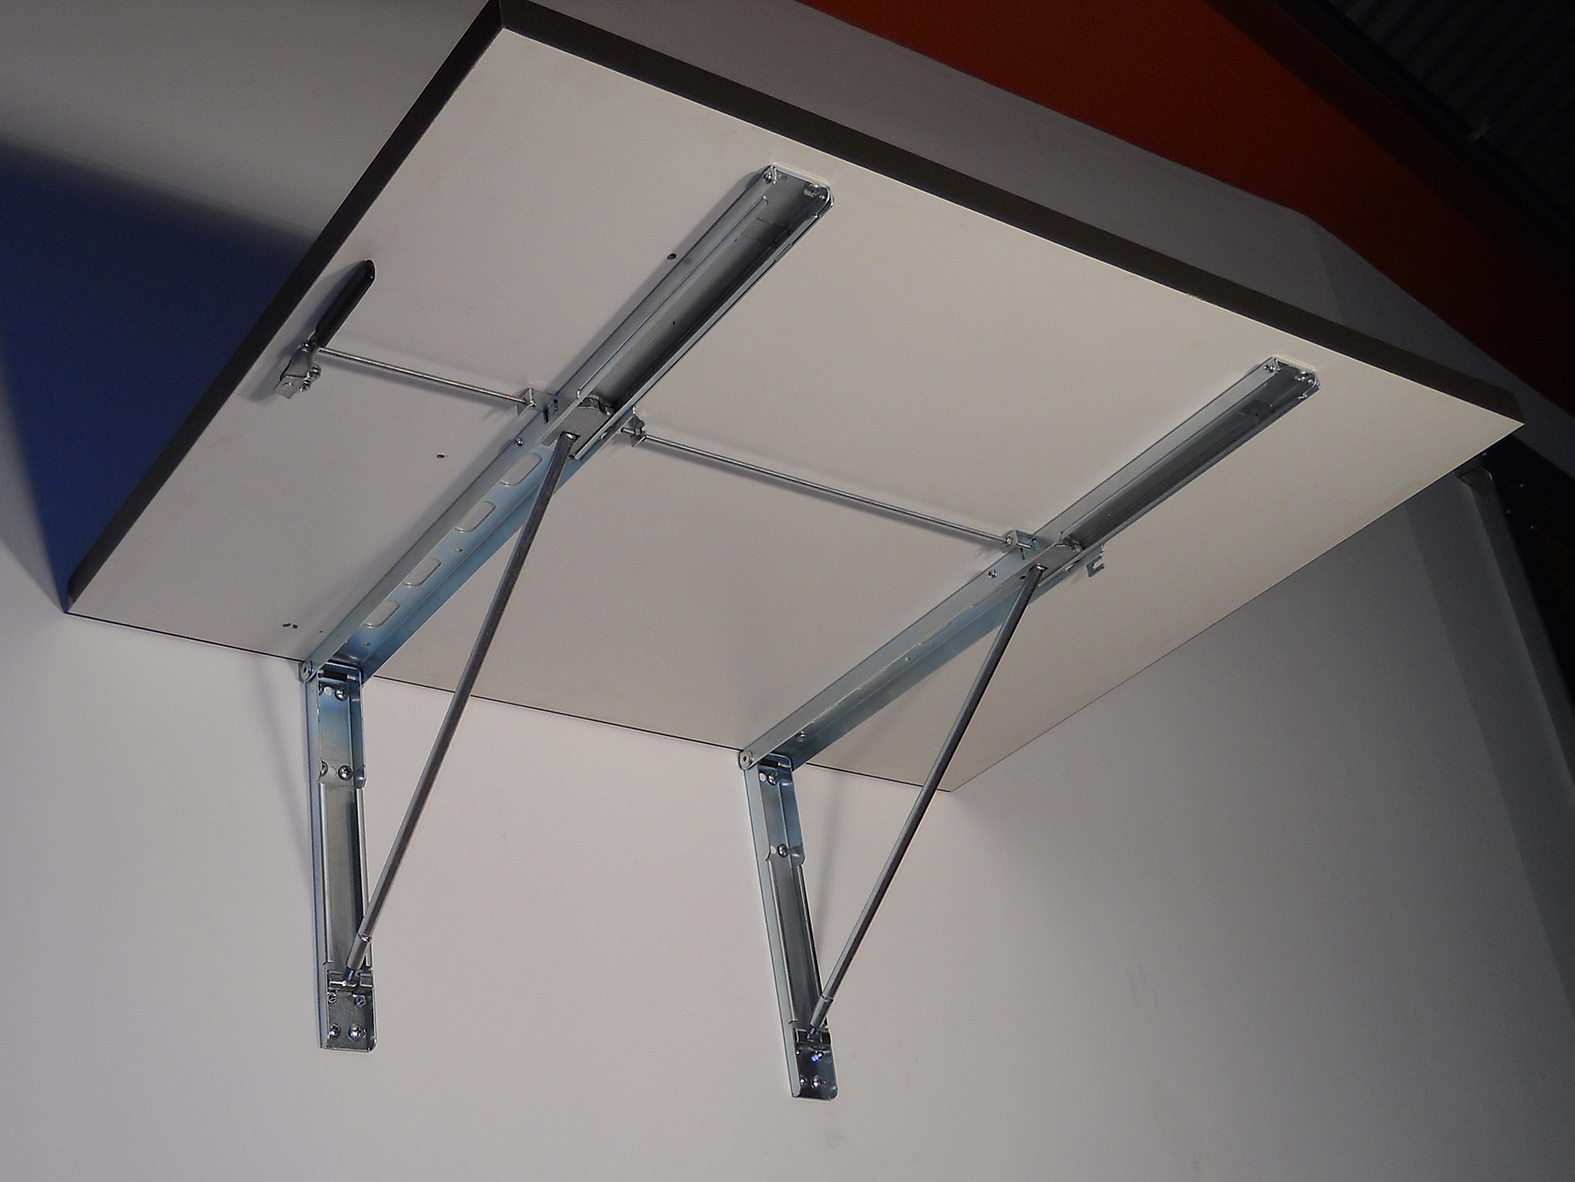 Wall Mounted Folding Table From Under